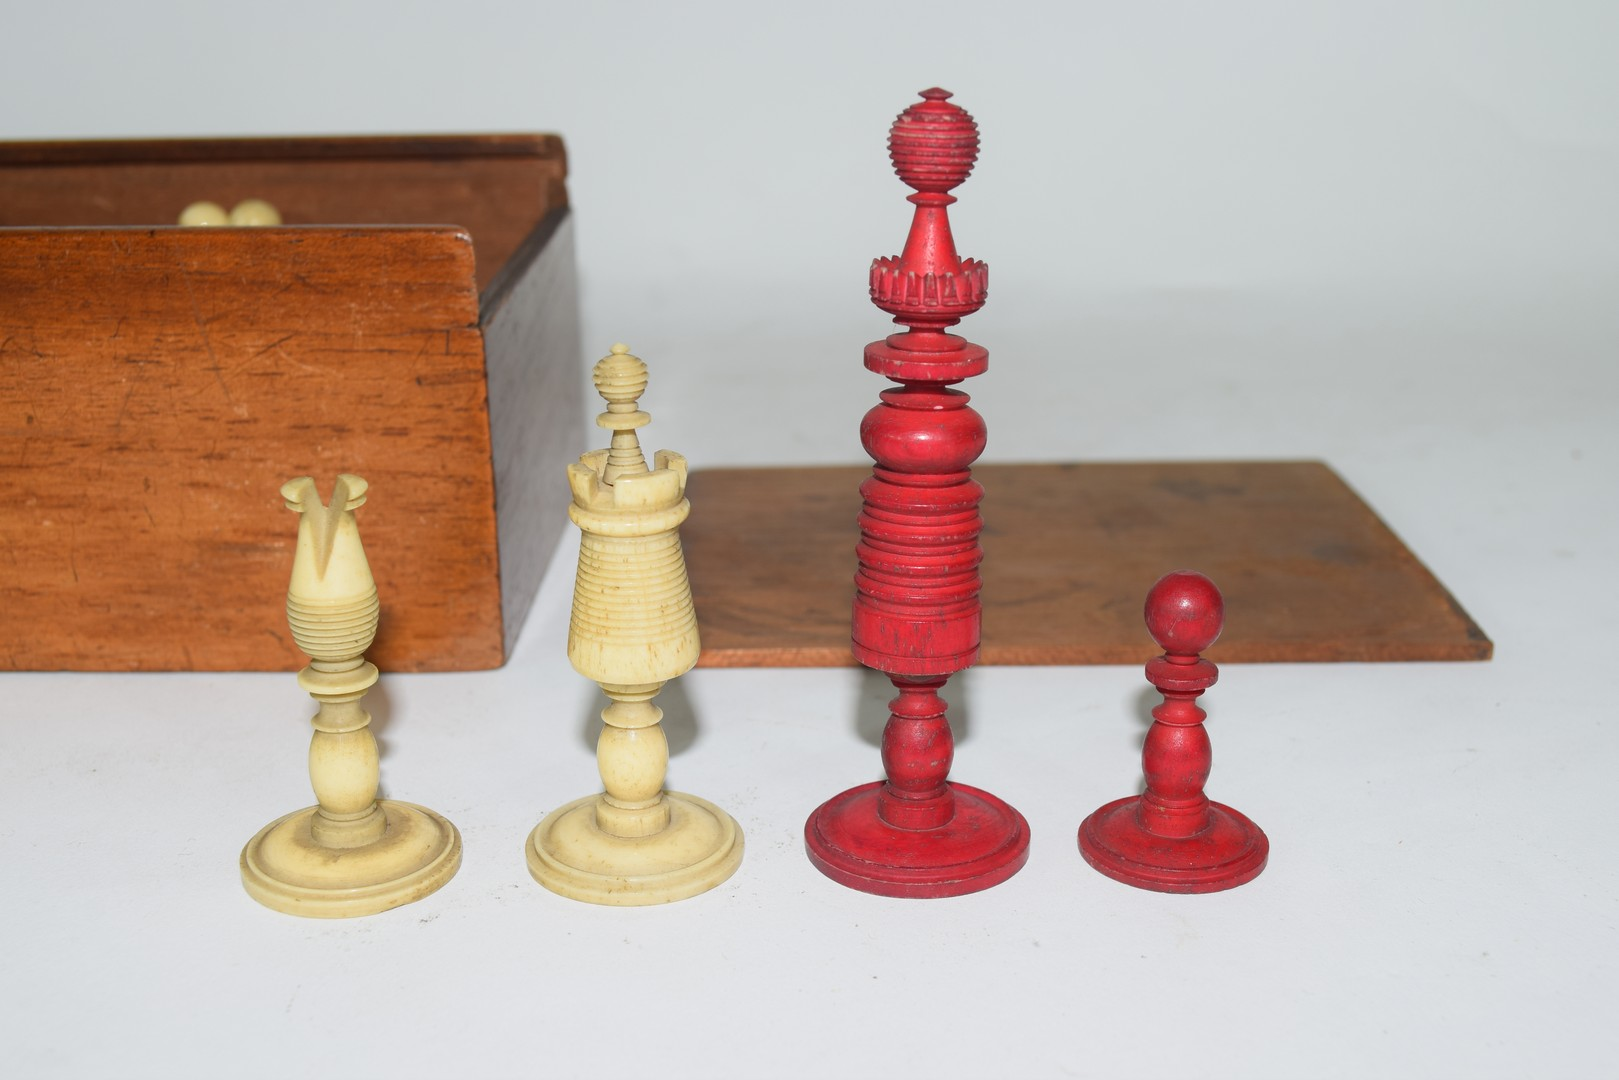 19th century ivory and red stained ivory part chess set - Image 2 of 2